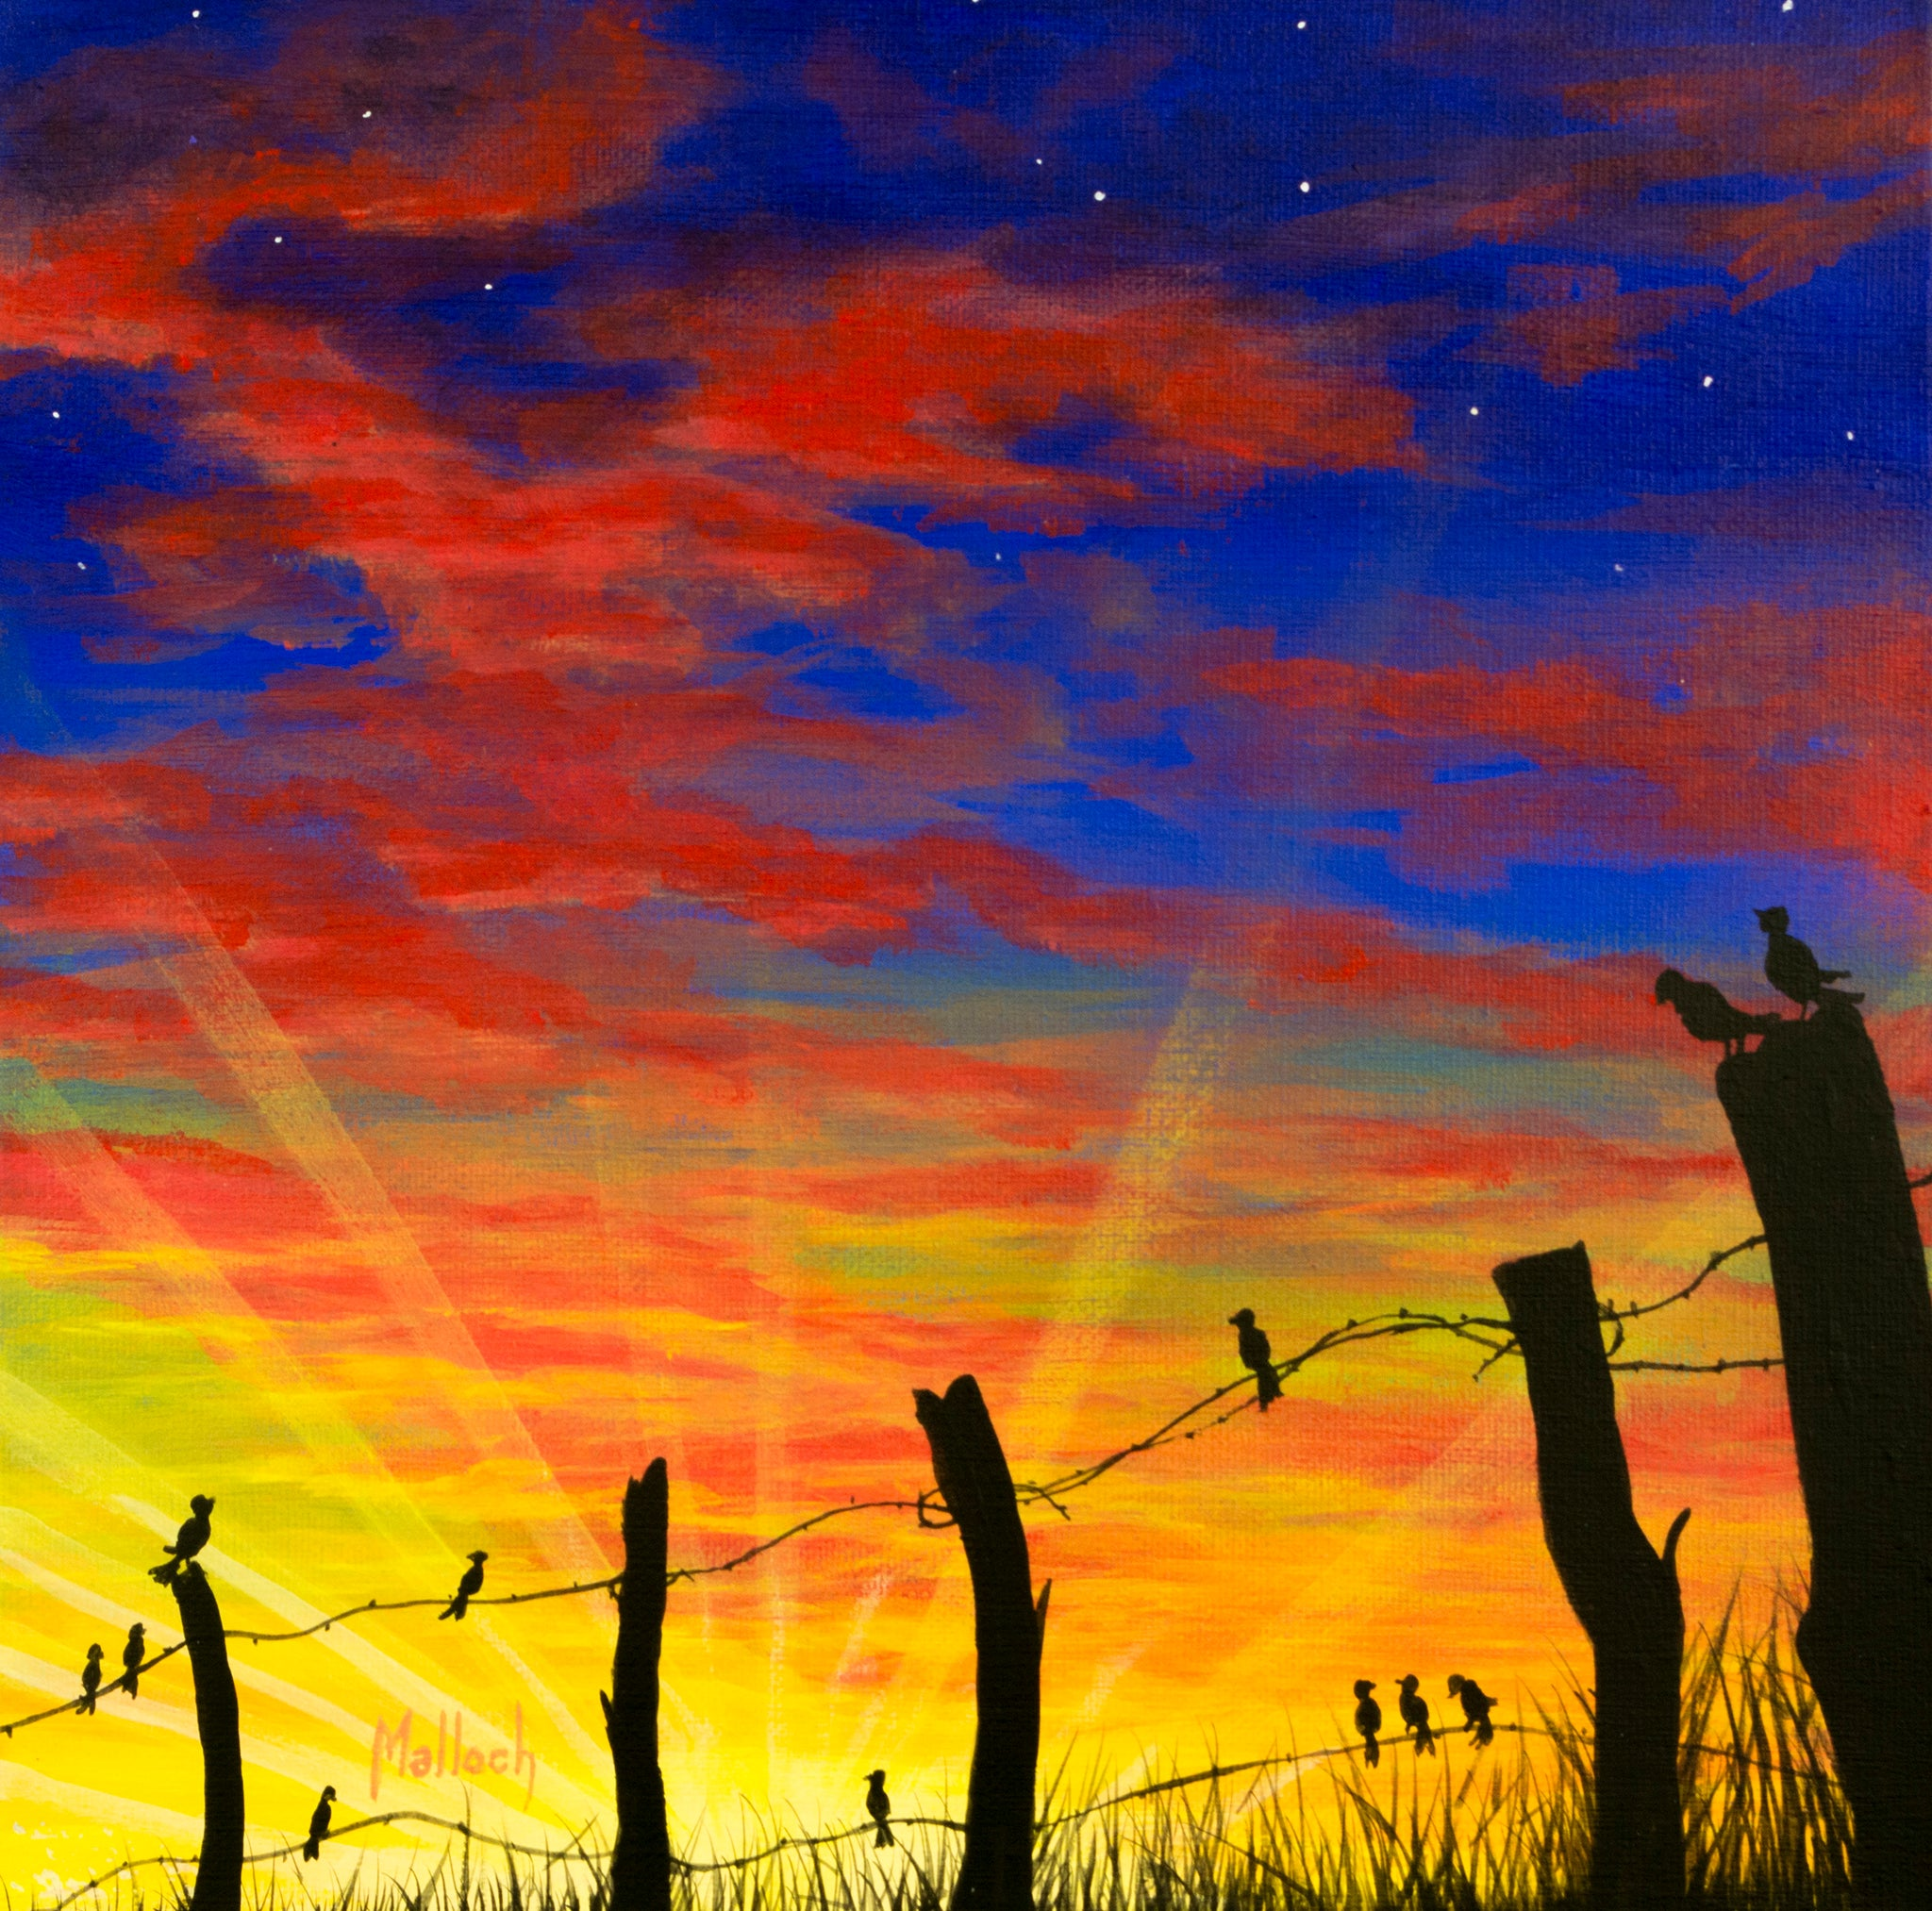 The Birds Red Sky at Night -- Acrylic painting by Jack Malloch